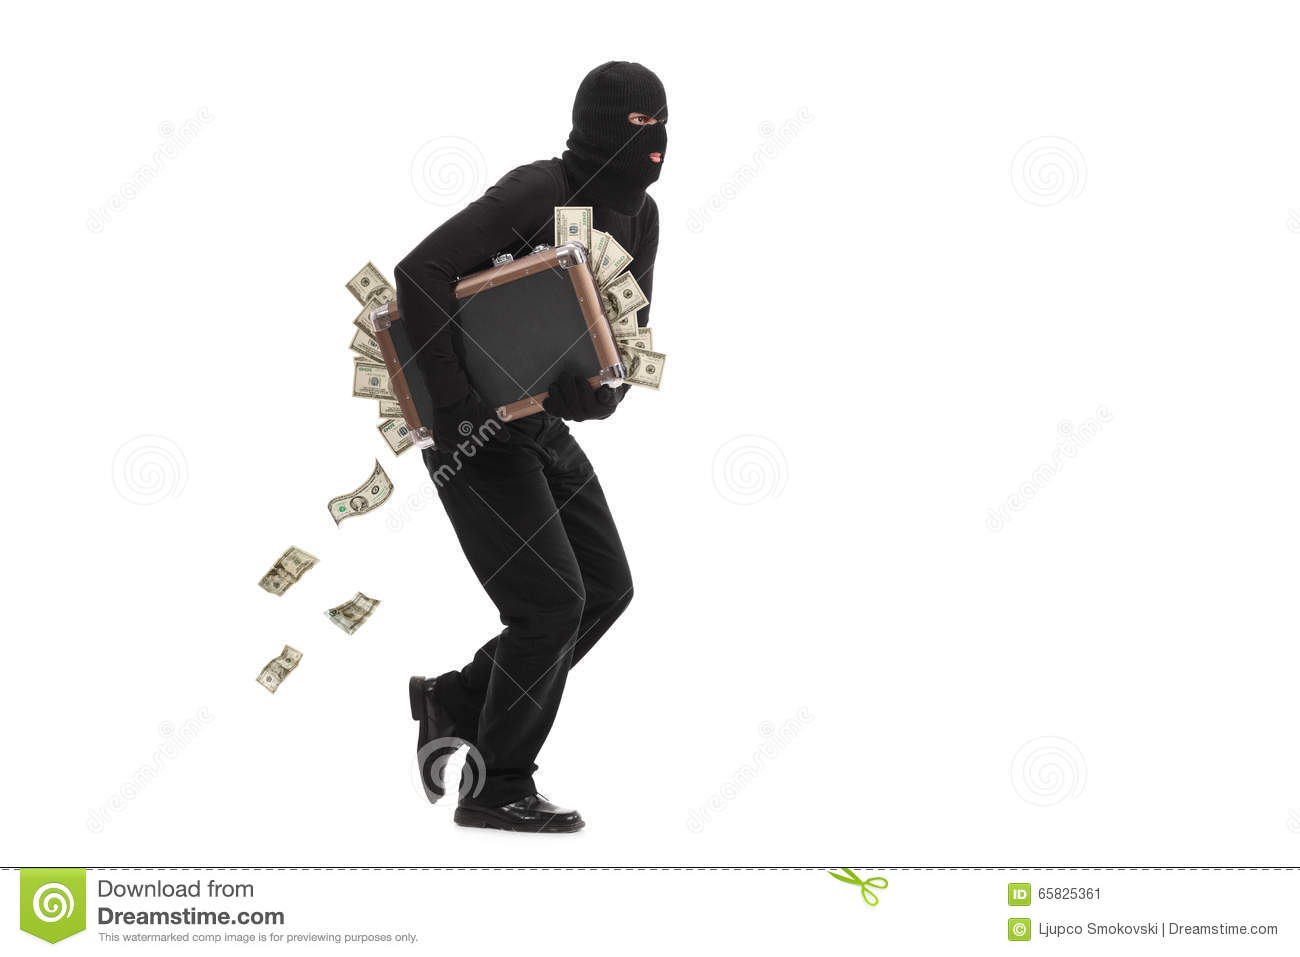 Burglar running with a bag full of money